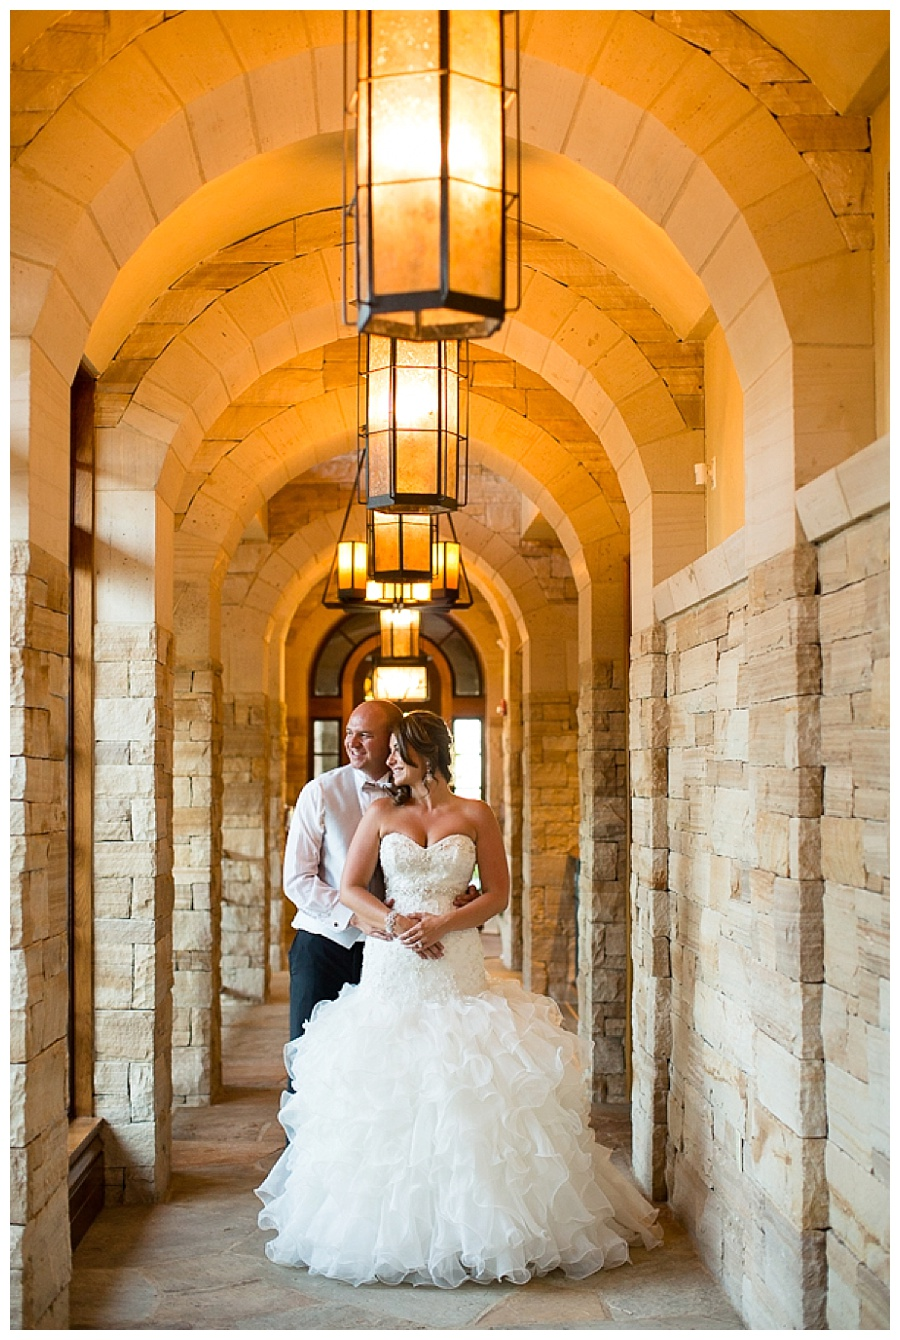 17 Bride and Groom in Hallway sanctuary golf course